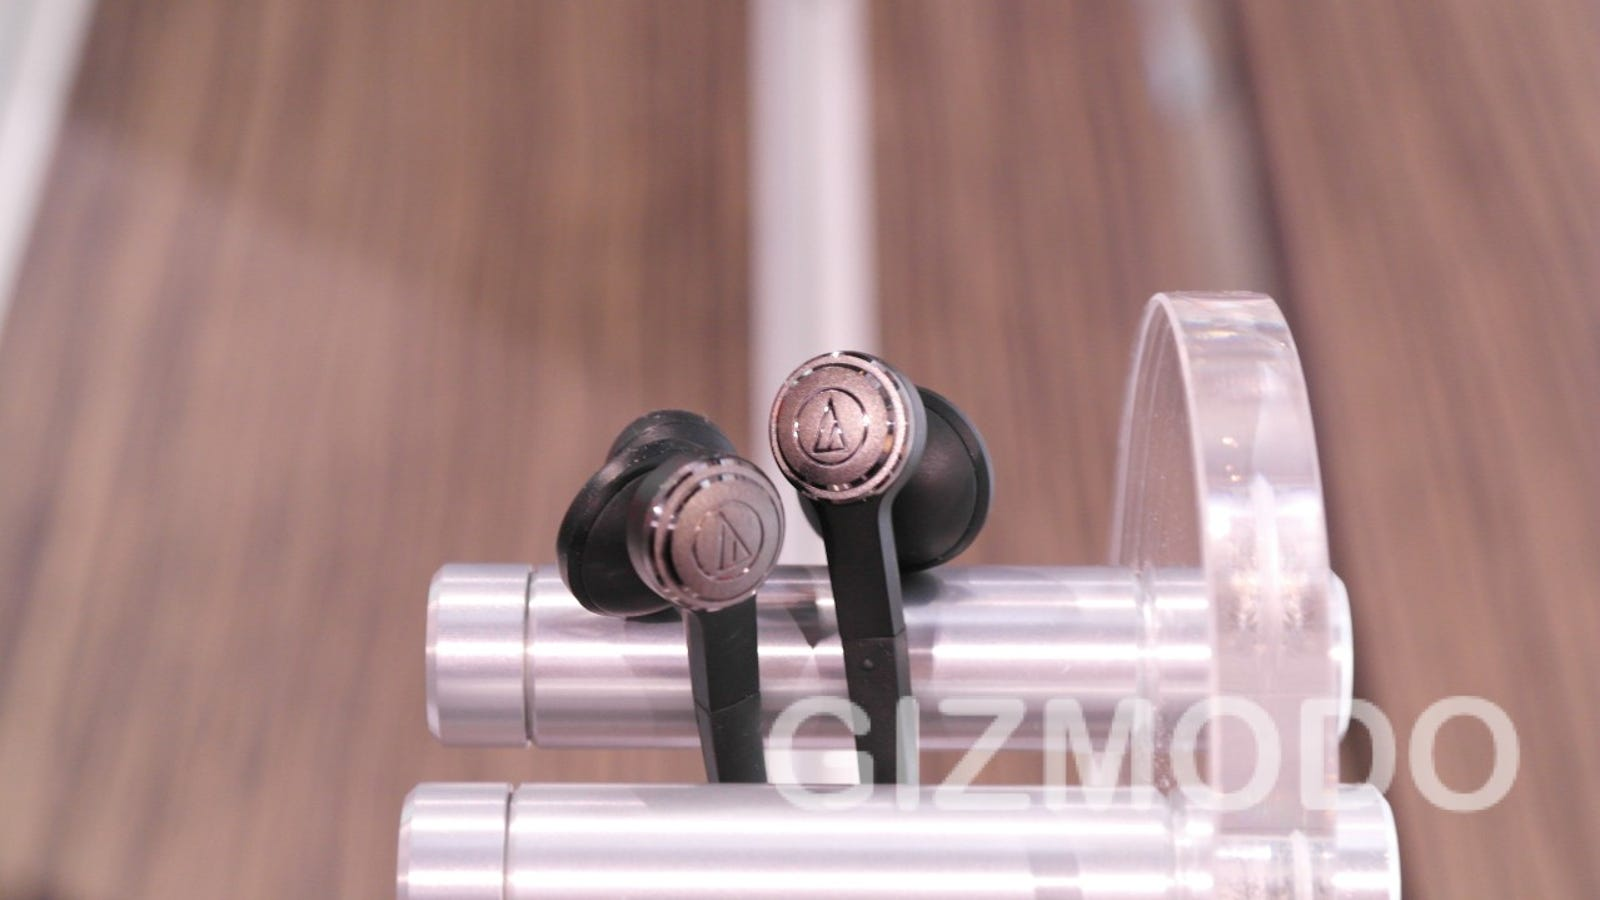 true wireless earbuds sweatproof - Audio-Technica's Solid Bass Buds Are Ready for Your Beats